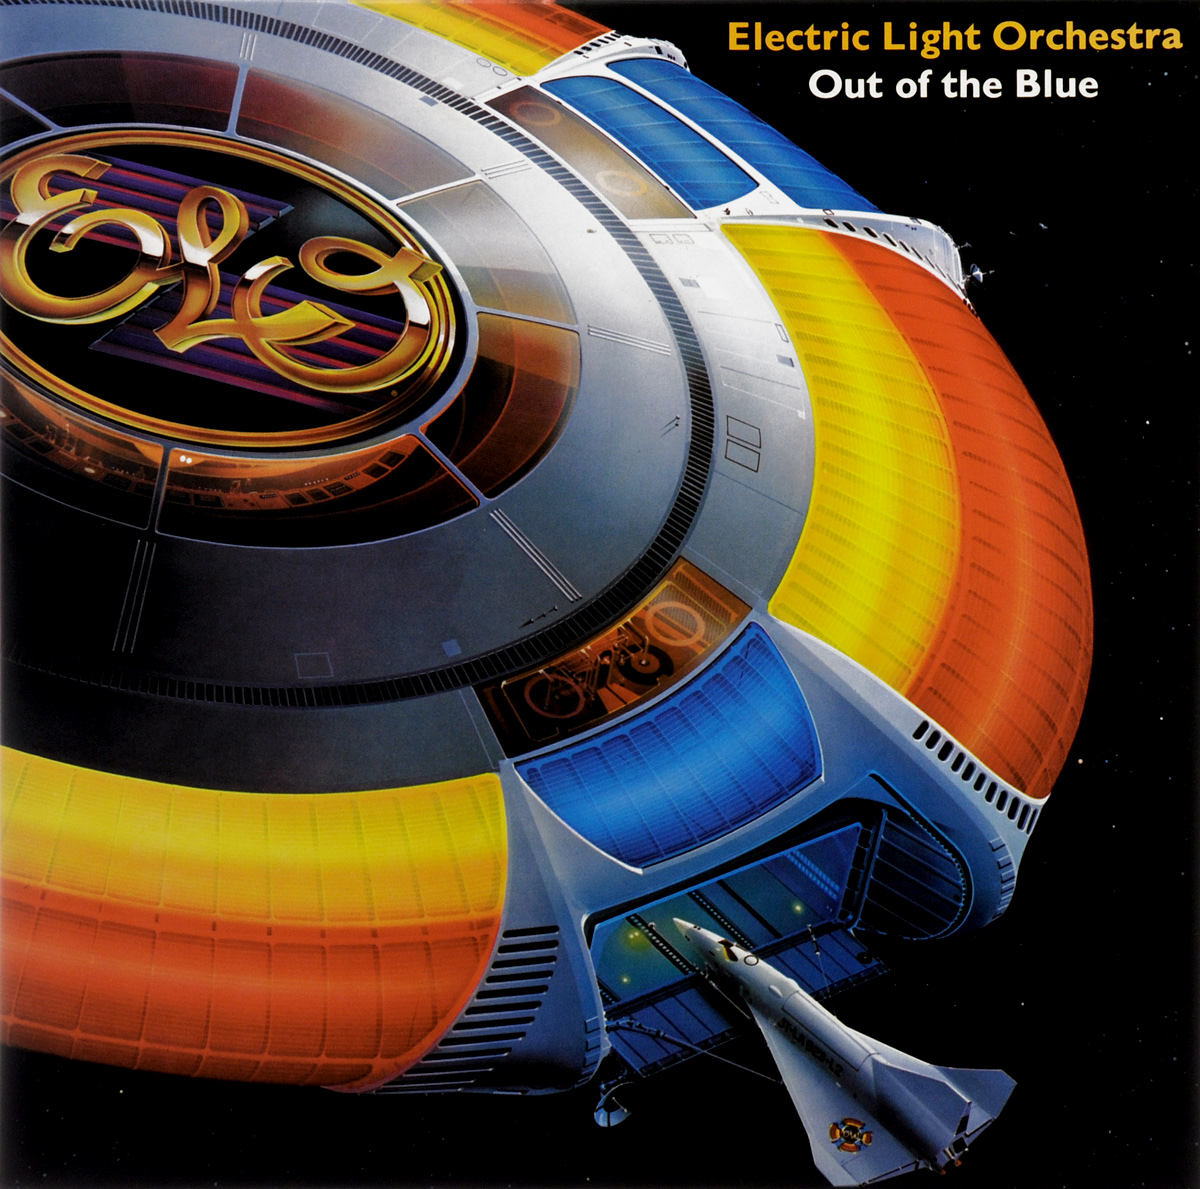 Фото - Electric Light Orchestra Electric Light Orchestra. Out Of The Blue (2 LP) free shipping au us type touch glass light switches 1 gang 1 way ac 110 240v electric wall switch with blue led indicator